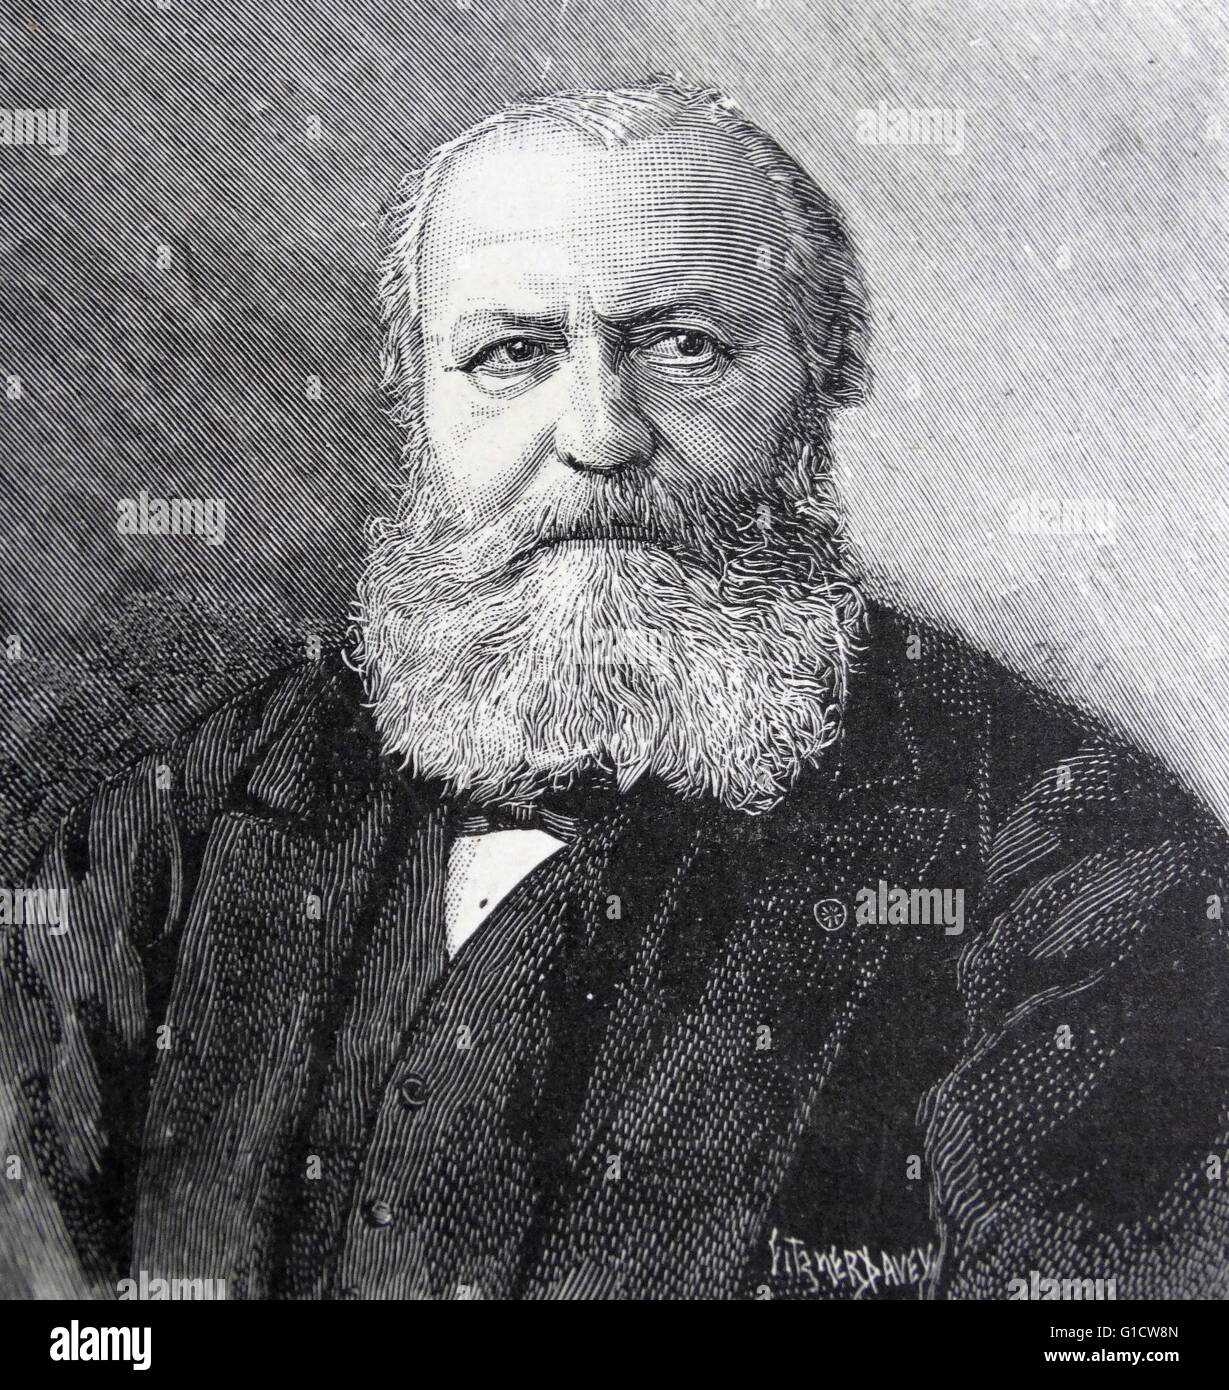 Portrait of Charles-François Gounod (1818-1893) a French composer, known for his Ave Maria, based on a work - Stock Image